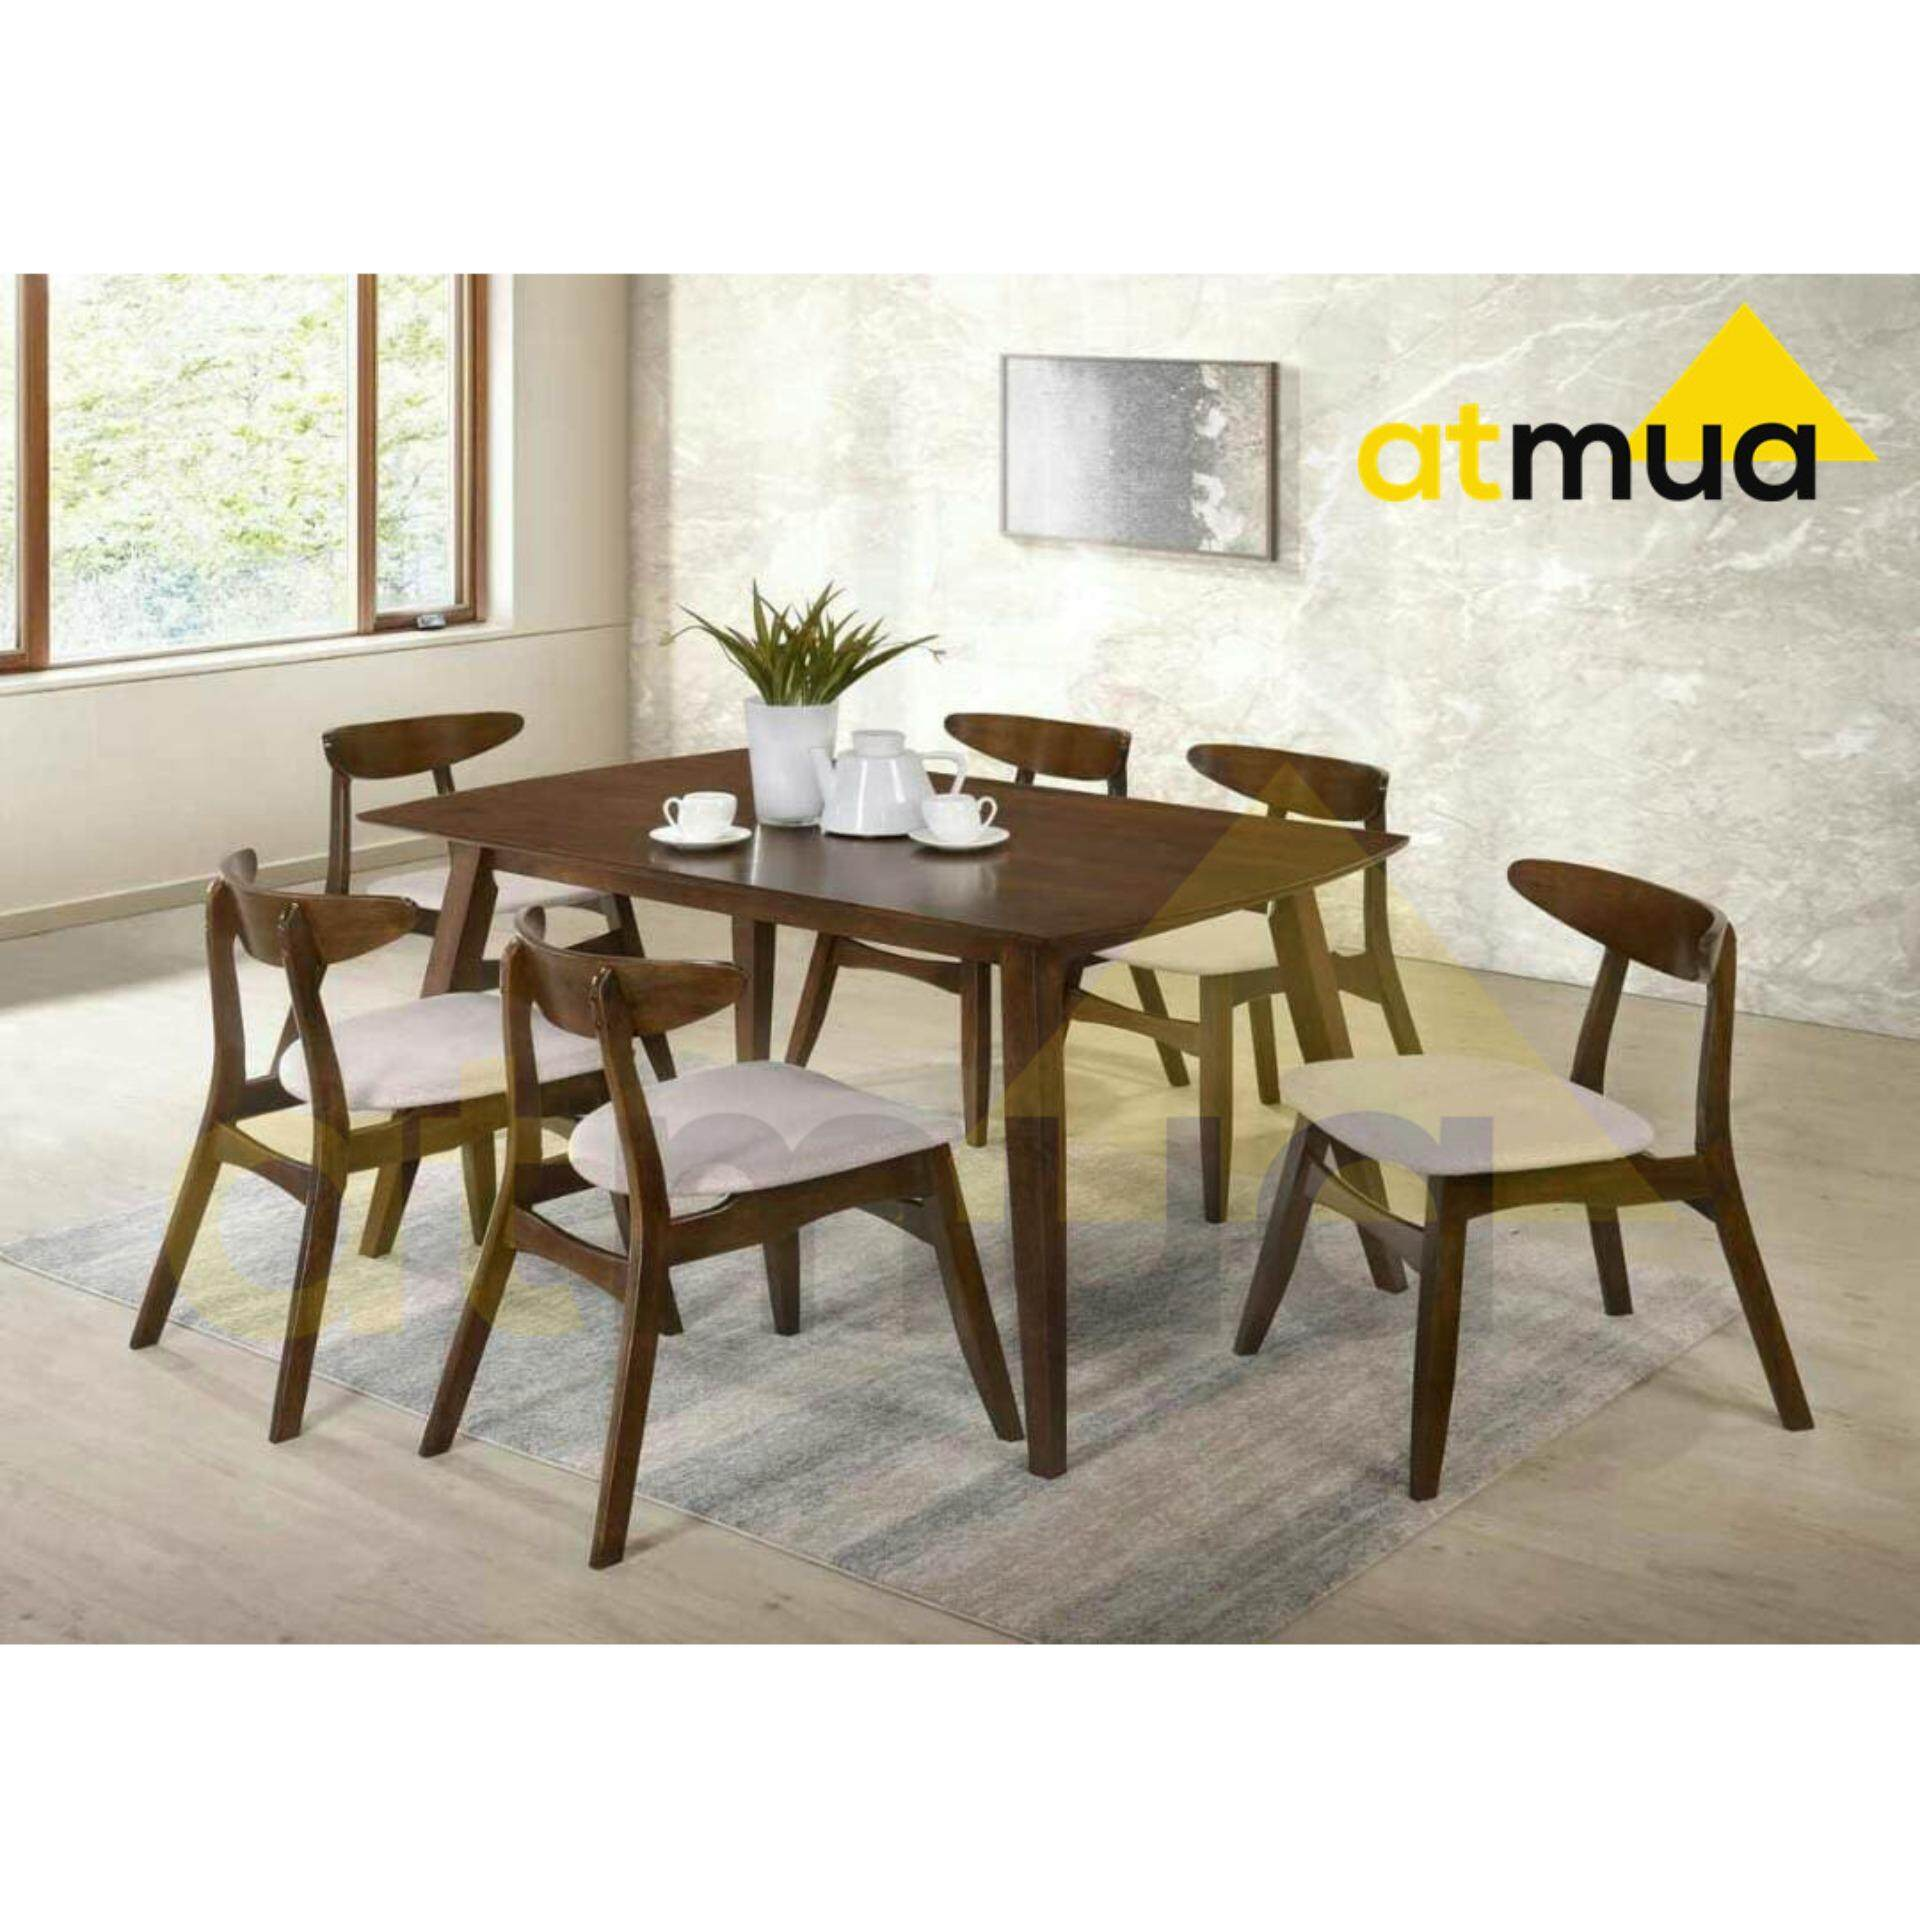 Atmua furnishing